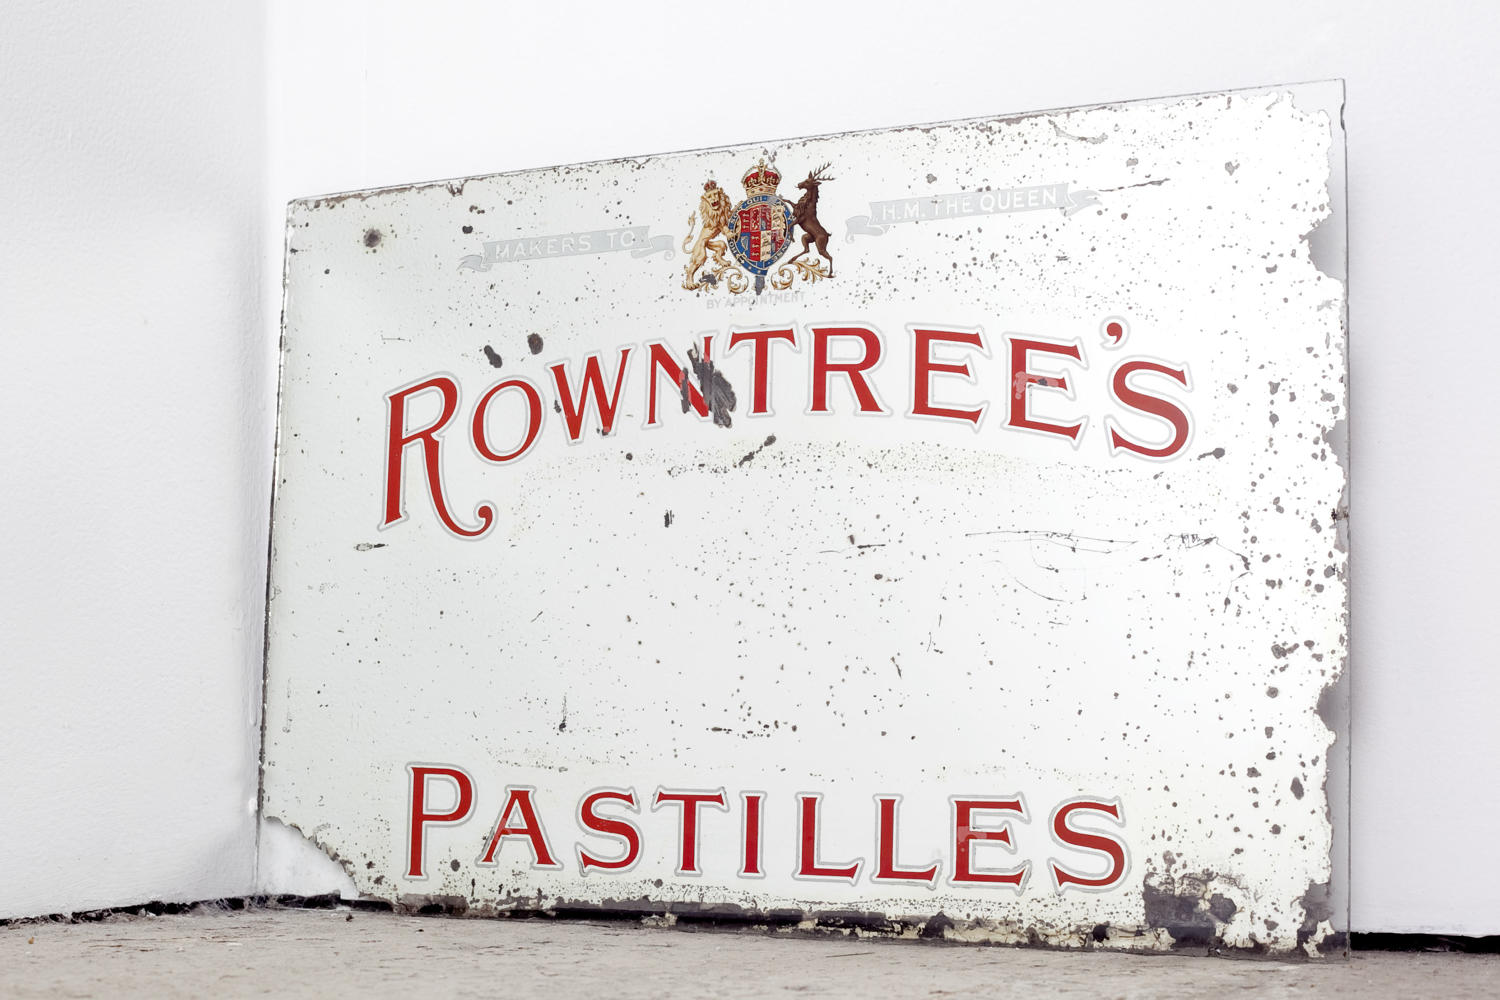 Early 20th century advertising mirror for Rowntree's Pastilles